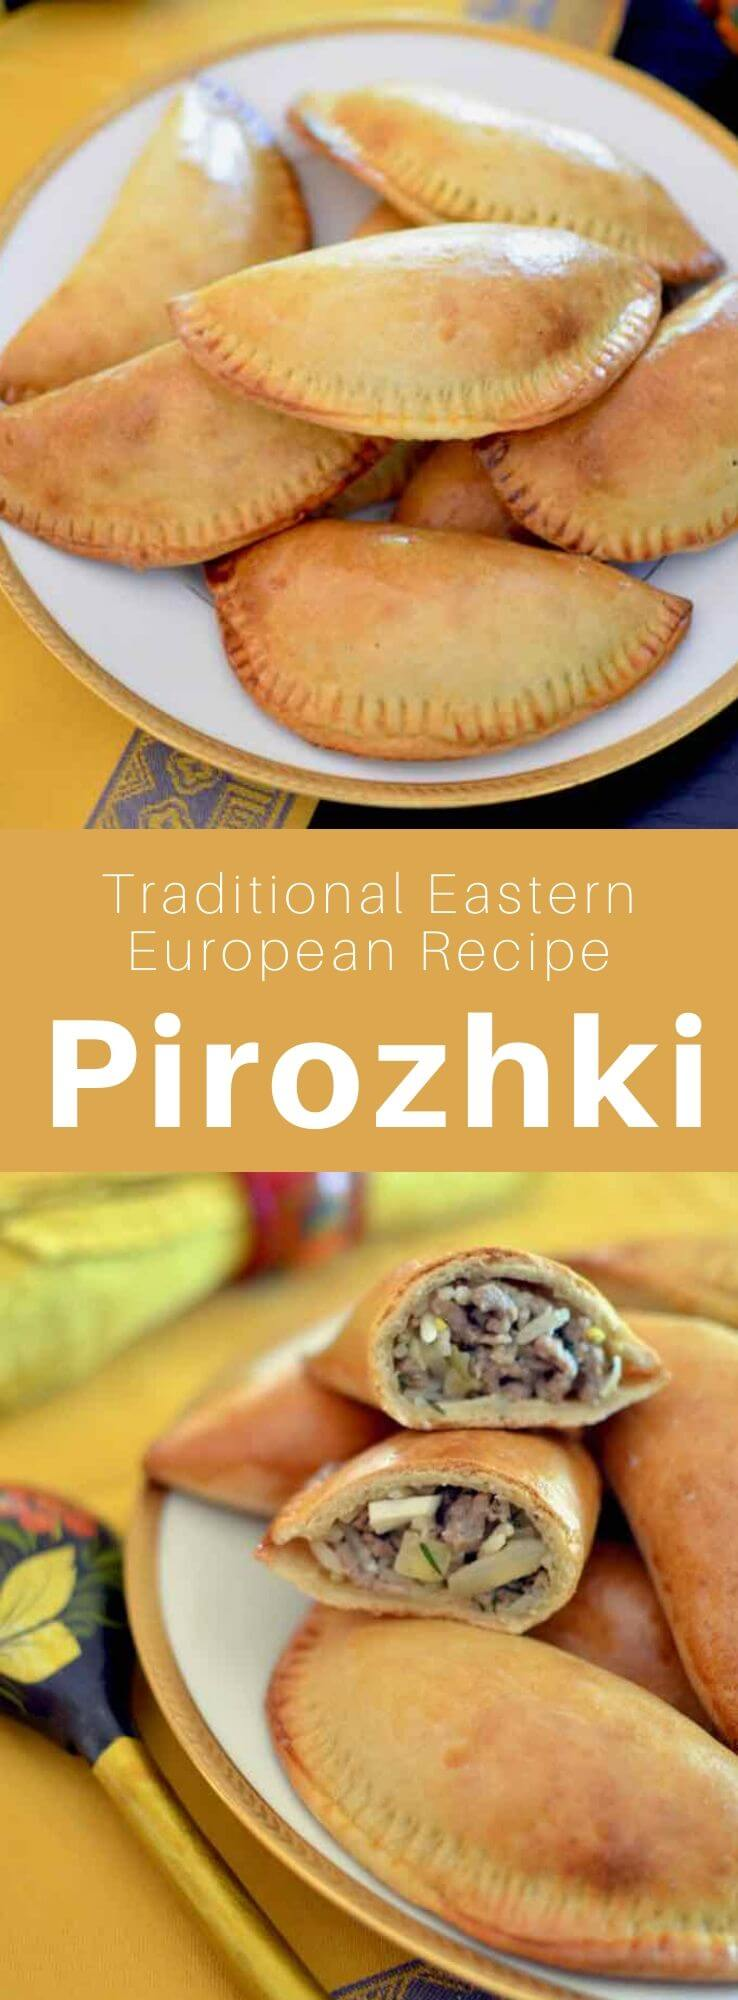 Pirojki are small turnovers of Russian origin, cooked or fried, which can be stuffed with minced meat, cheese, mushrooms or vegetables. #Russia #Russian #RussianRecipe #RussianFood #WorldCuisine #196flavors